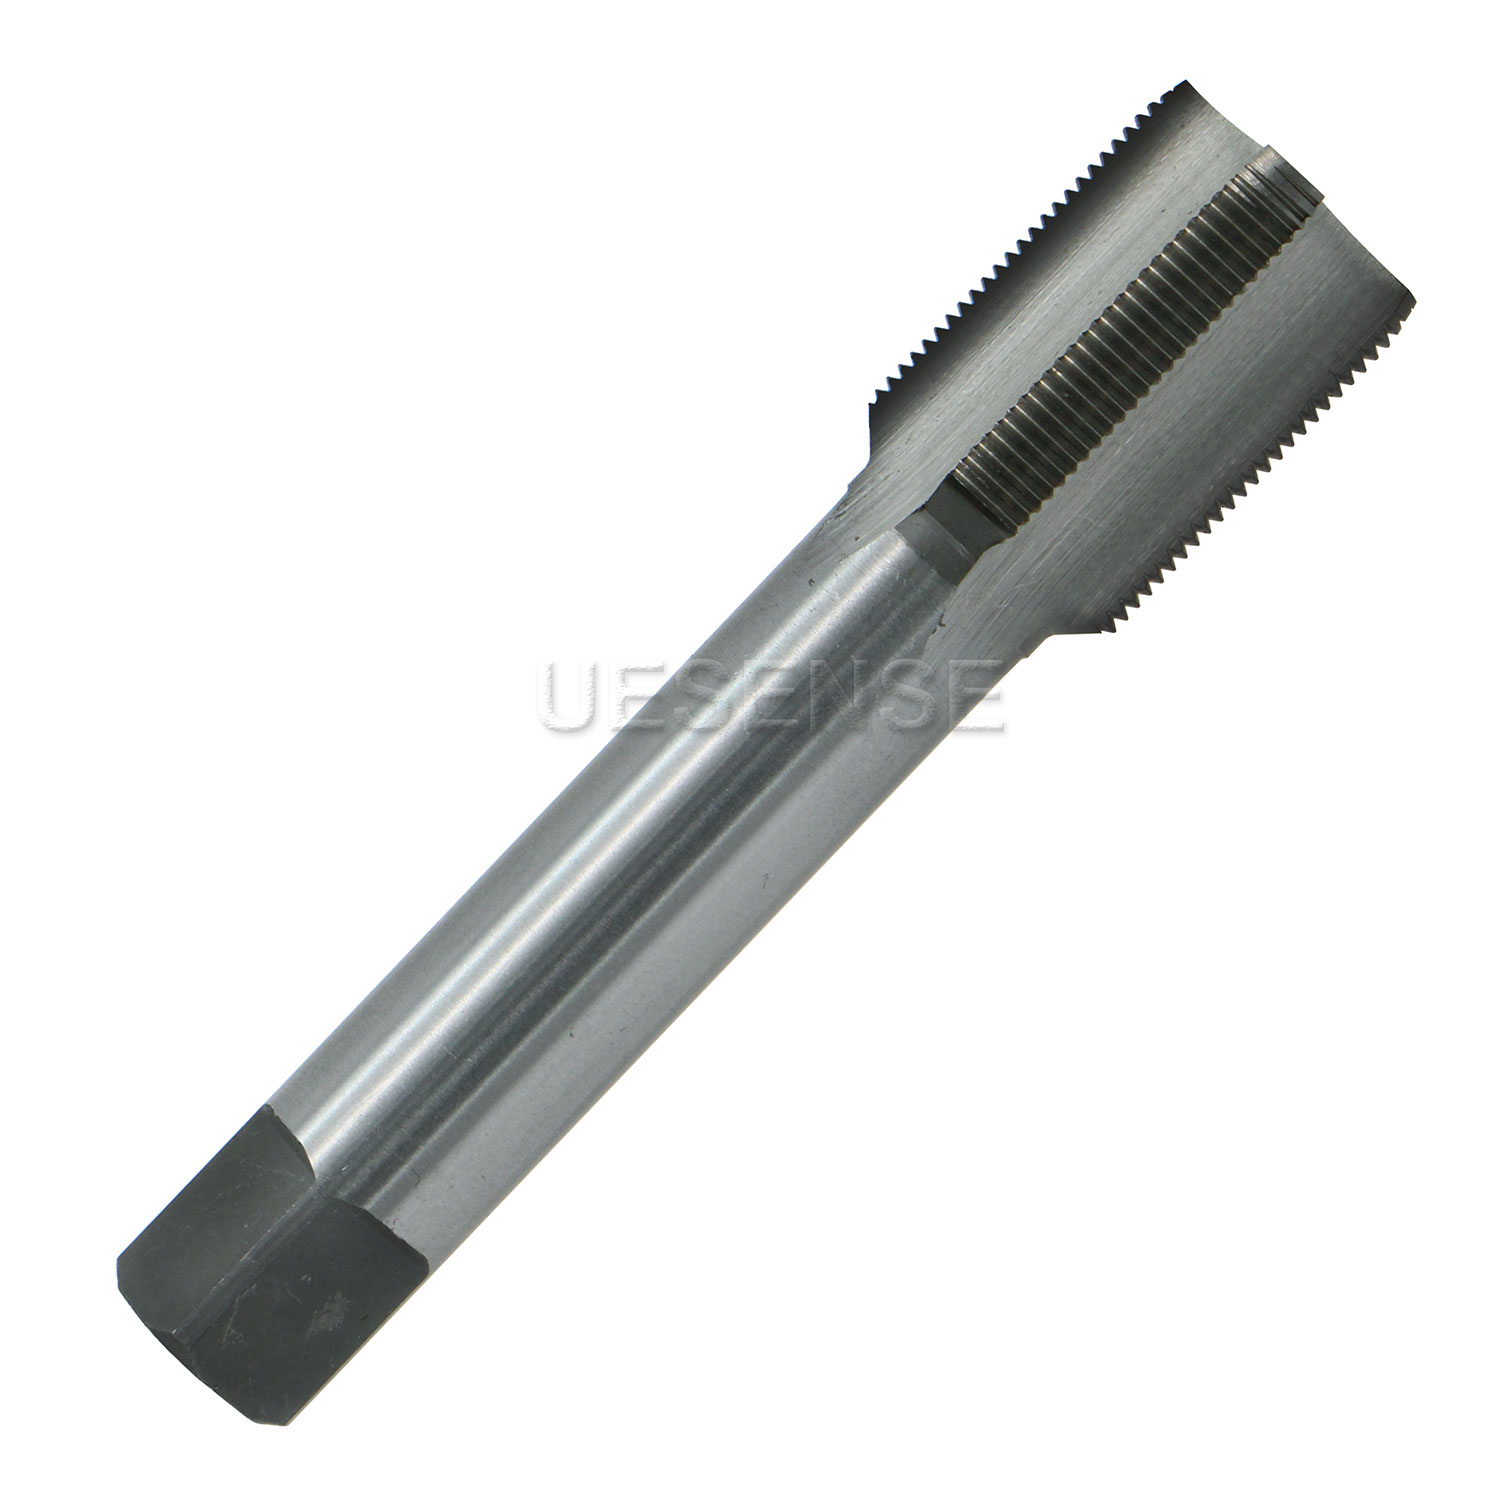 """20 UNEF HSS Right Hand Thread Tap 1-20 TPI Threading Cutting Grinding 1/"""""""